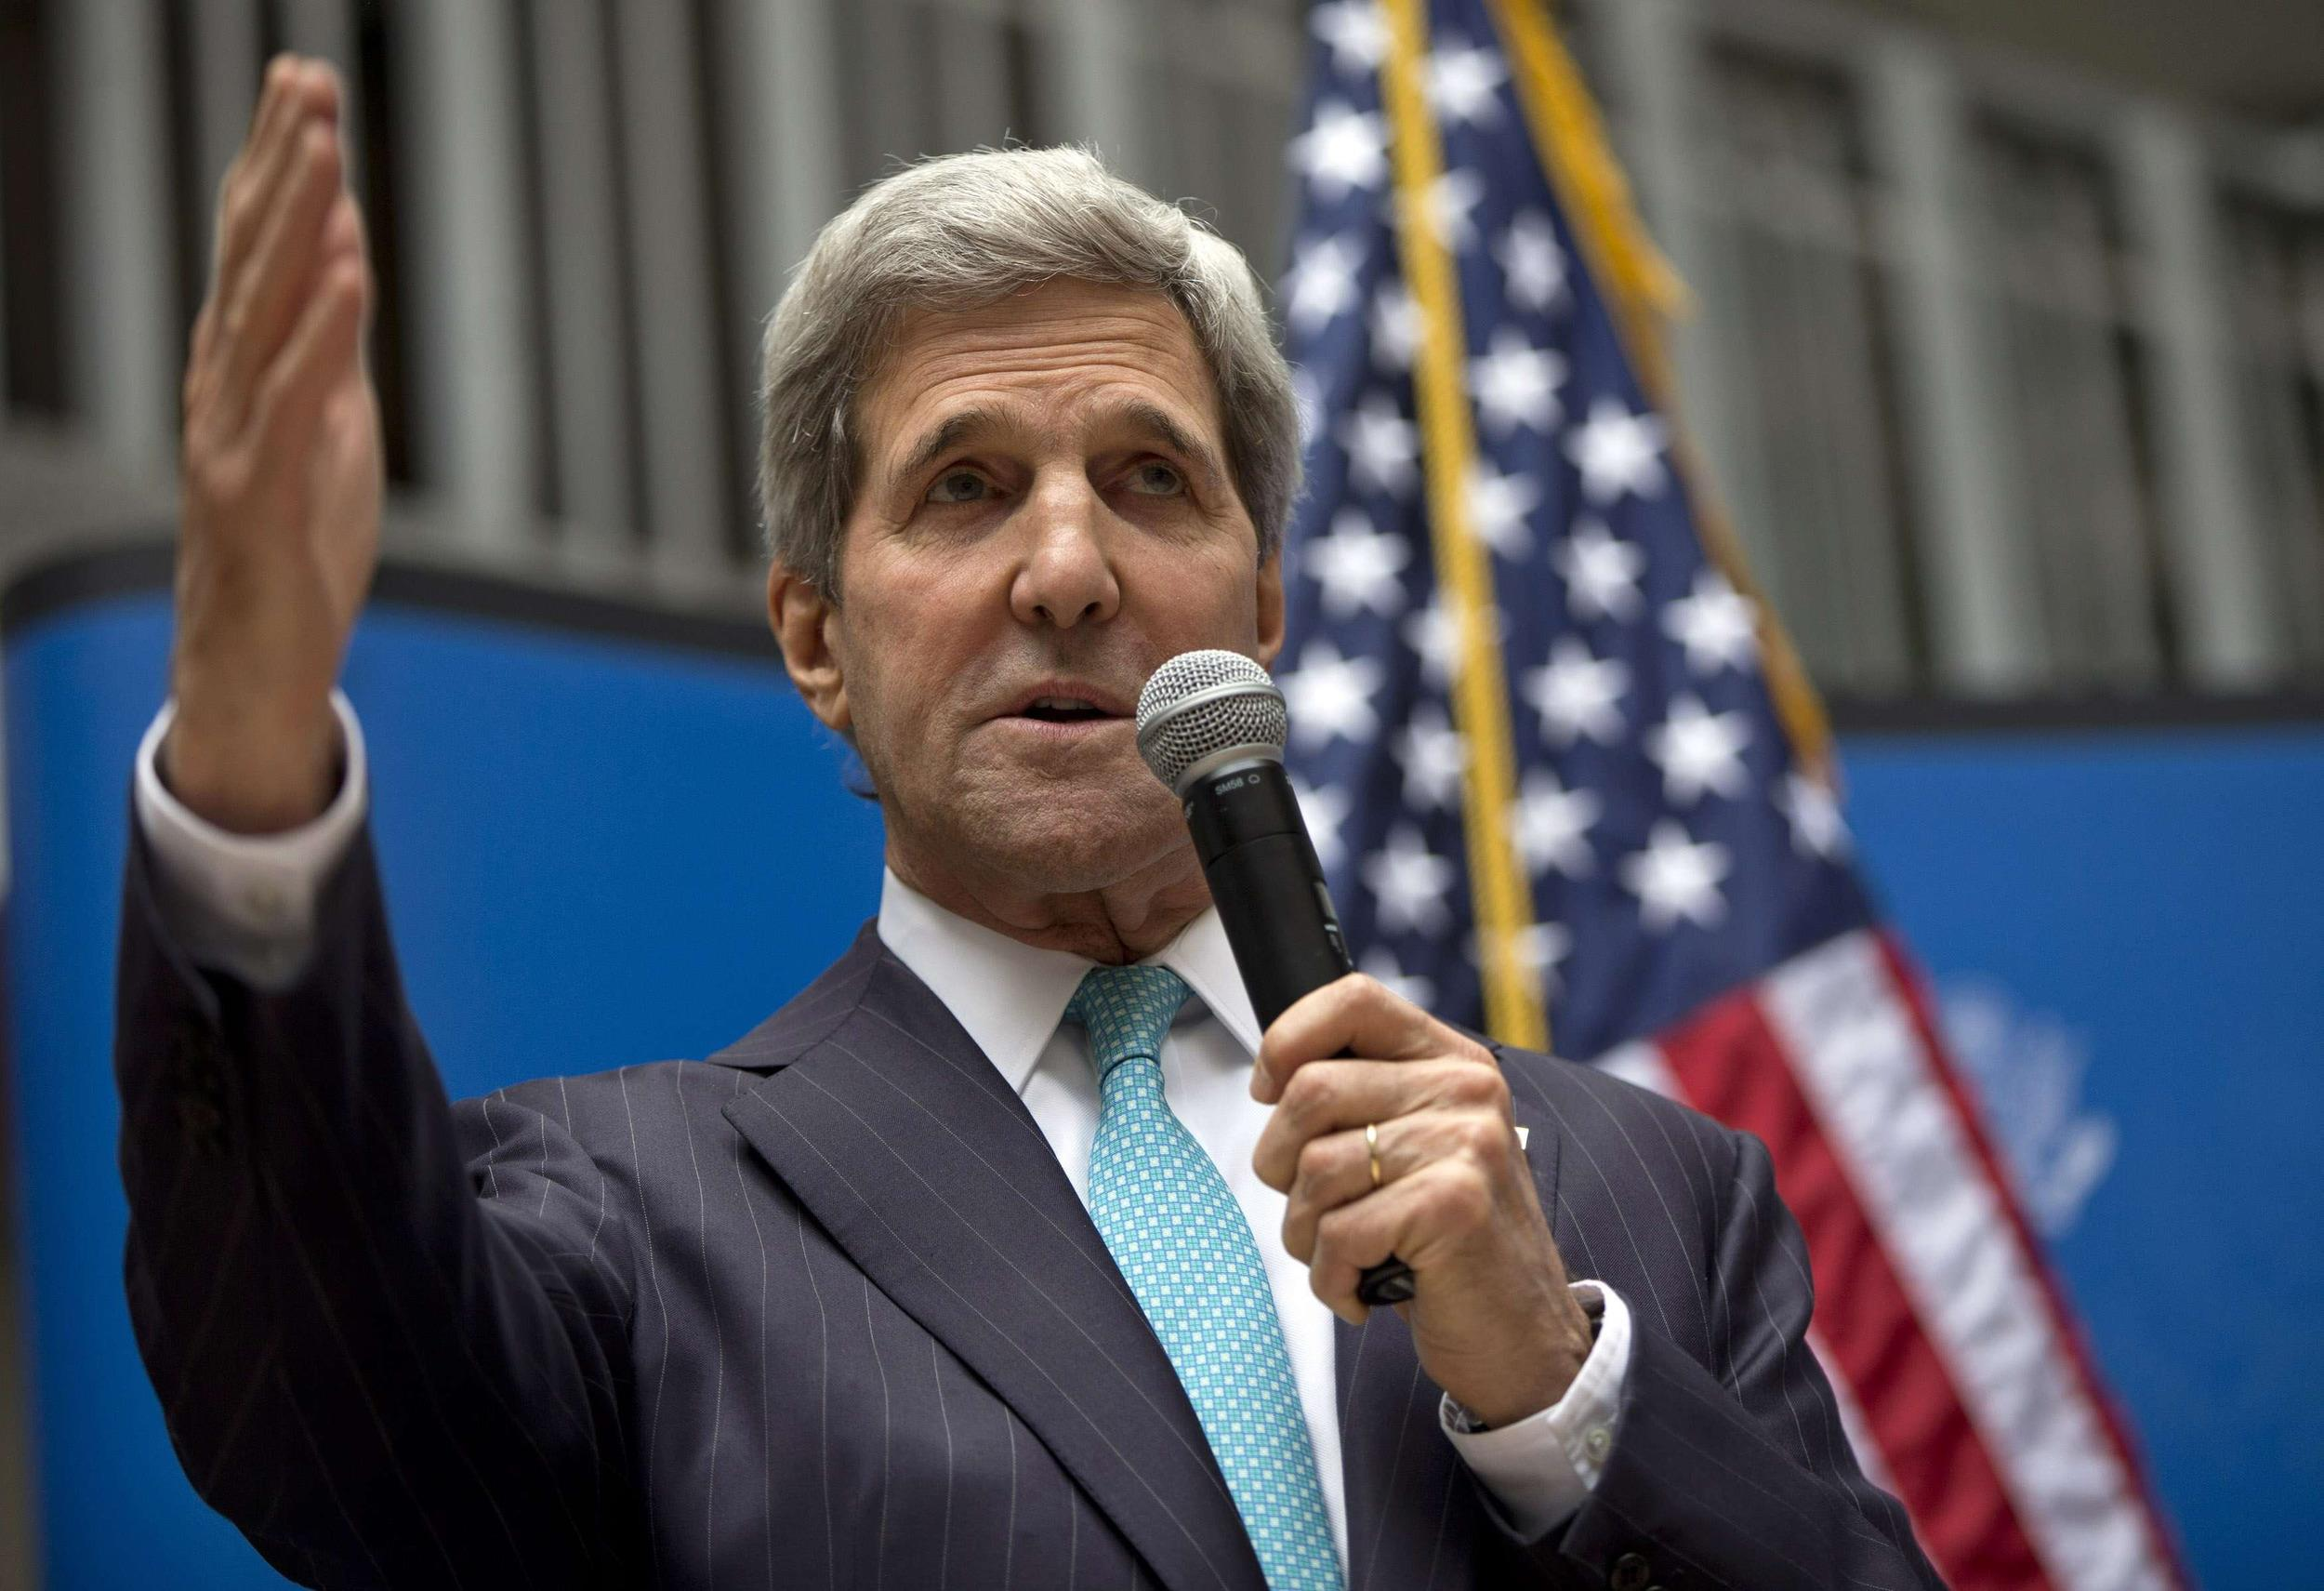 Image: U.S. Secretary of State John Kerry speaks to U.S. embassy employees during a reception in Mexico City